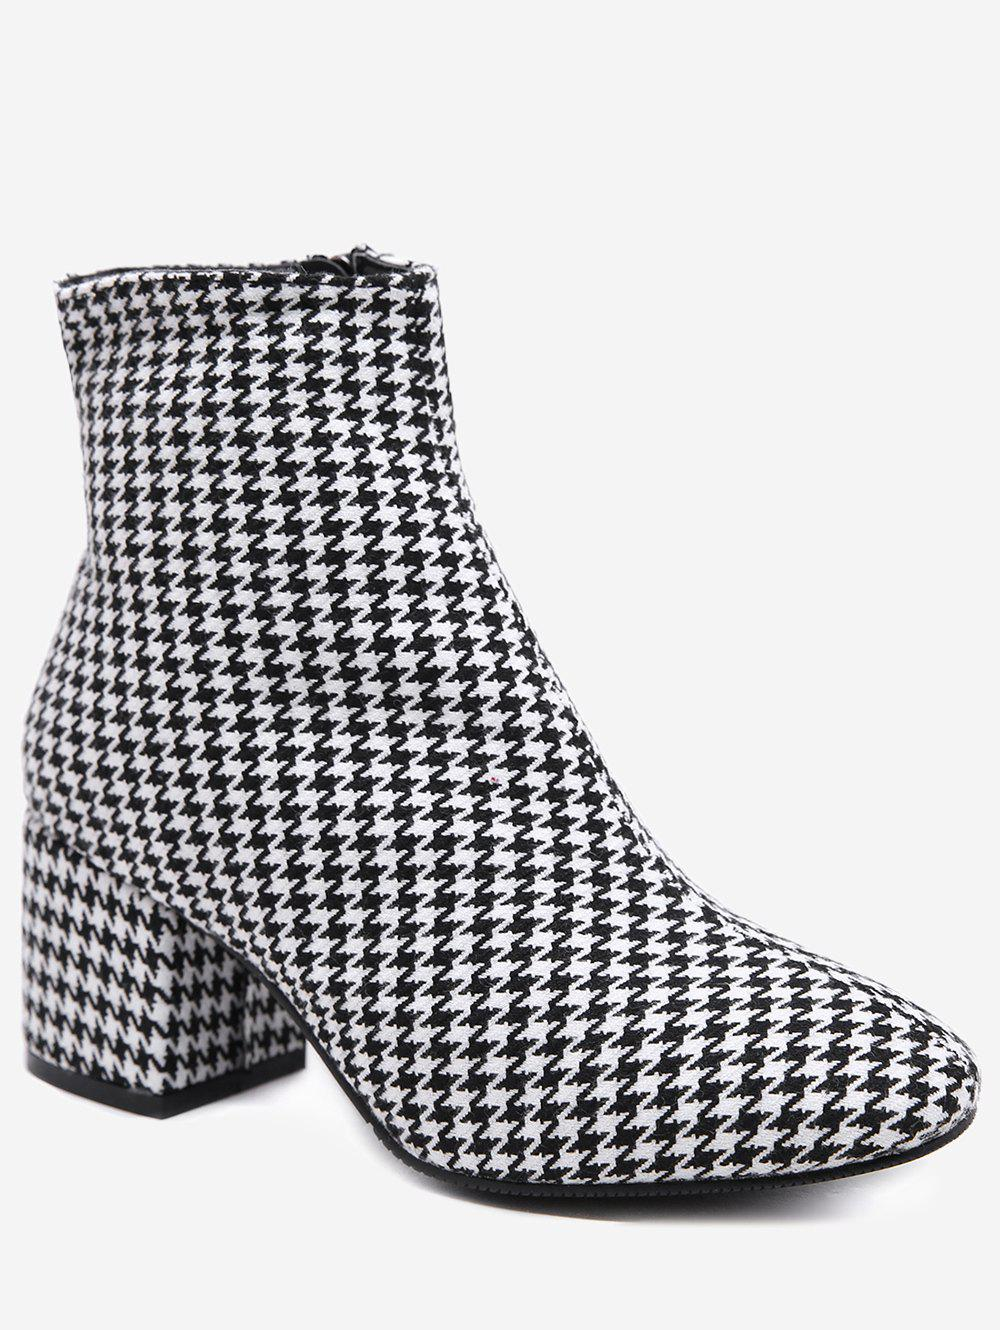 Store Houndstooth Suede Ankle Boots